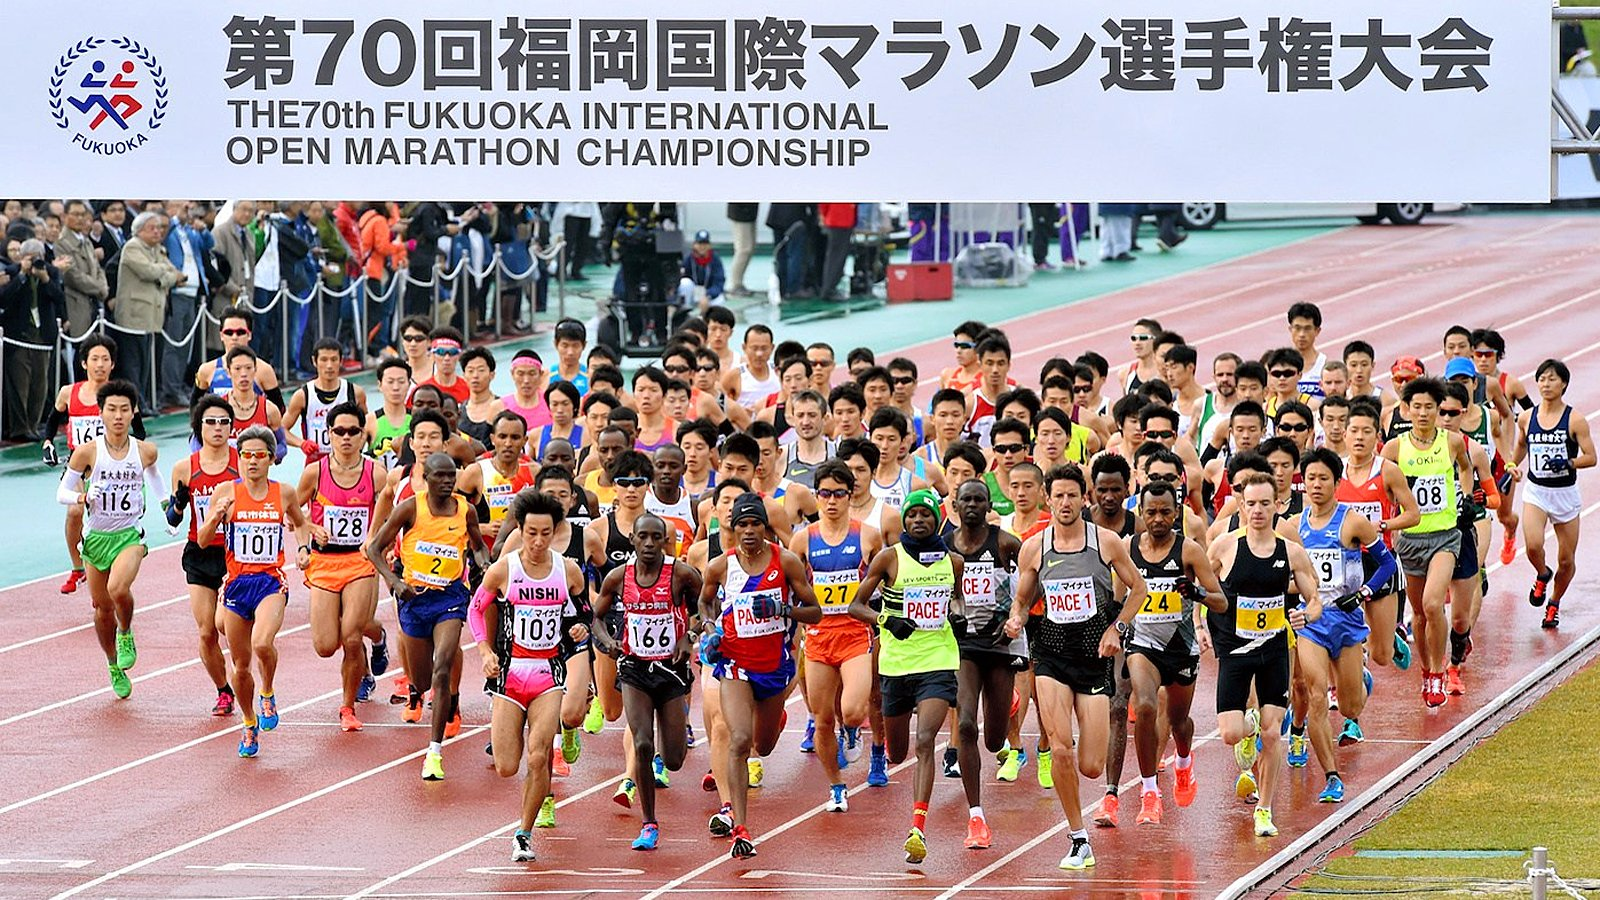 В предверии 71-й Fukuoka International Open Marathon Championship